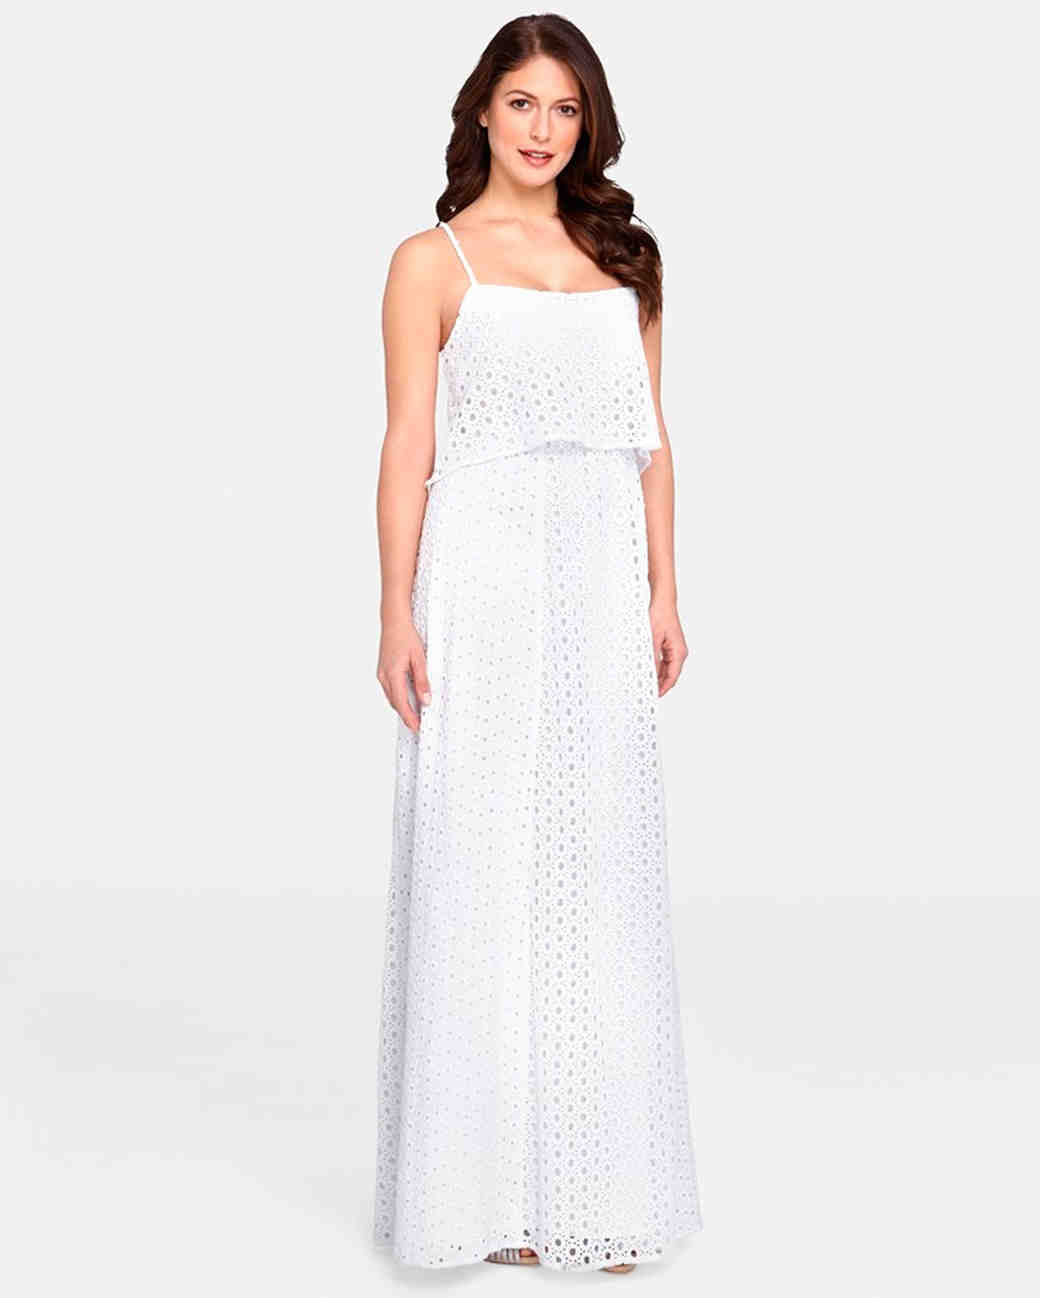 aface75a26617 20 City Hall Wedding Dress Ideas For Making It Official In Style ·  Maternity ...